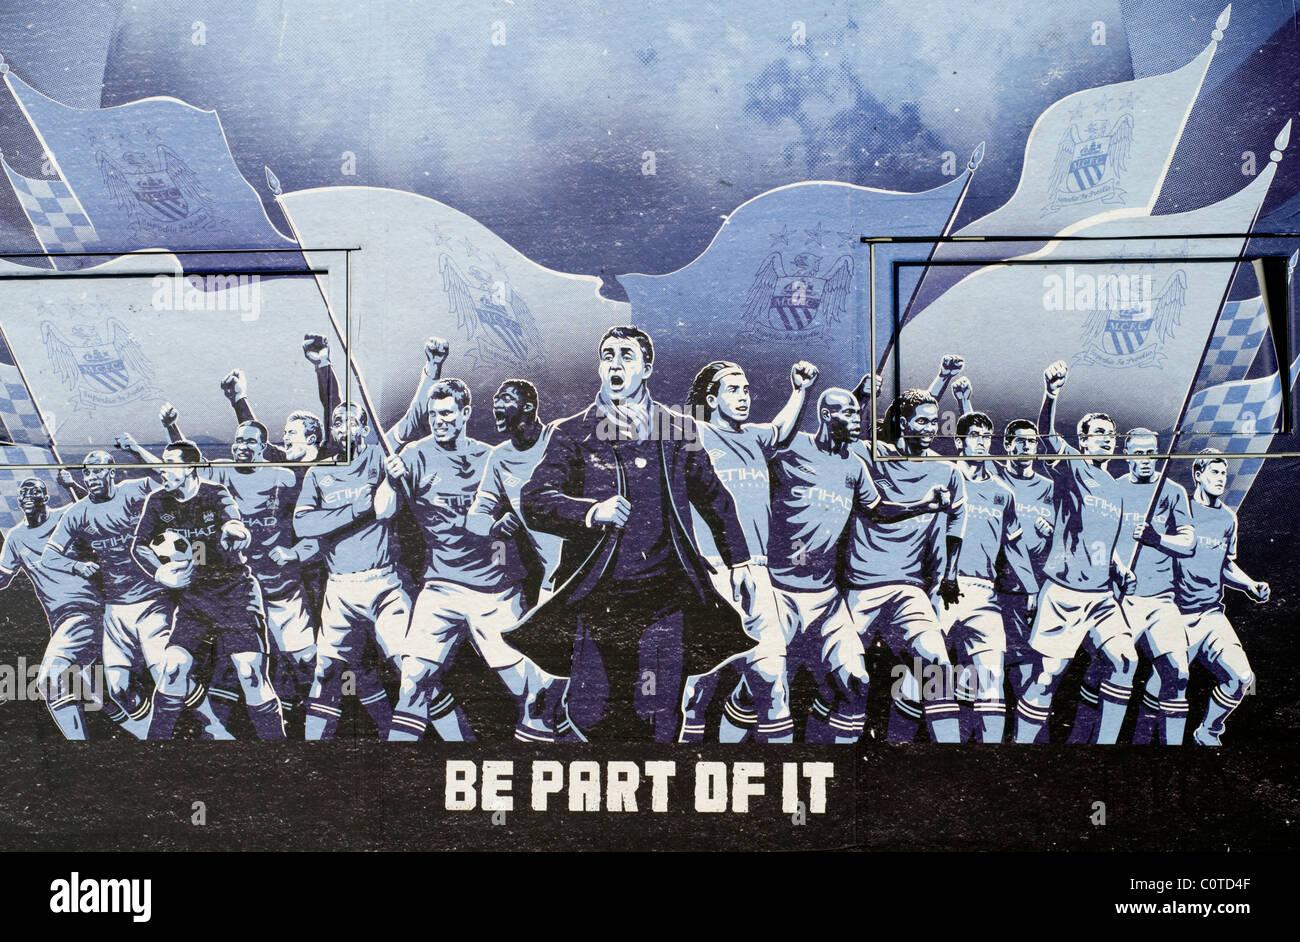 A large artwork on an exterior wall at Manchester City's Etihad football stadium in England - Stock Image